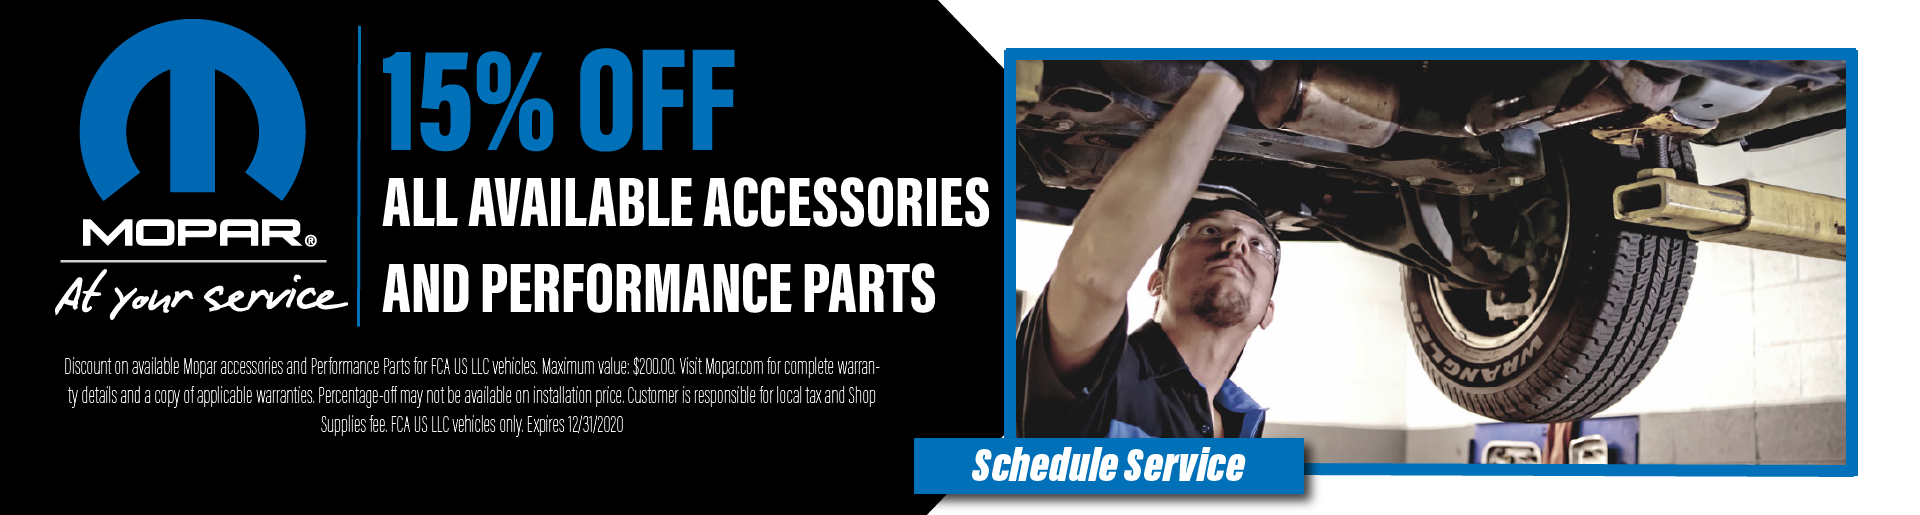 15% off Accessories and performance parts